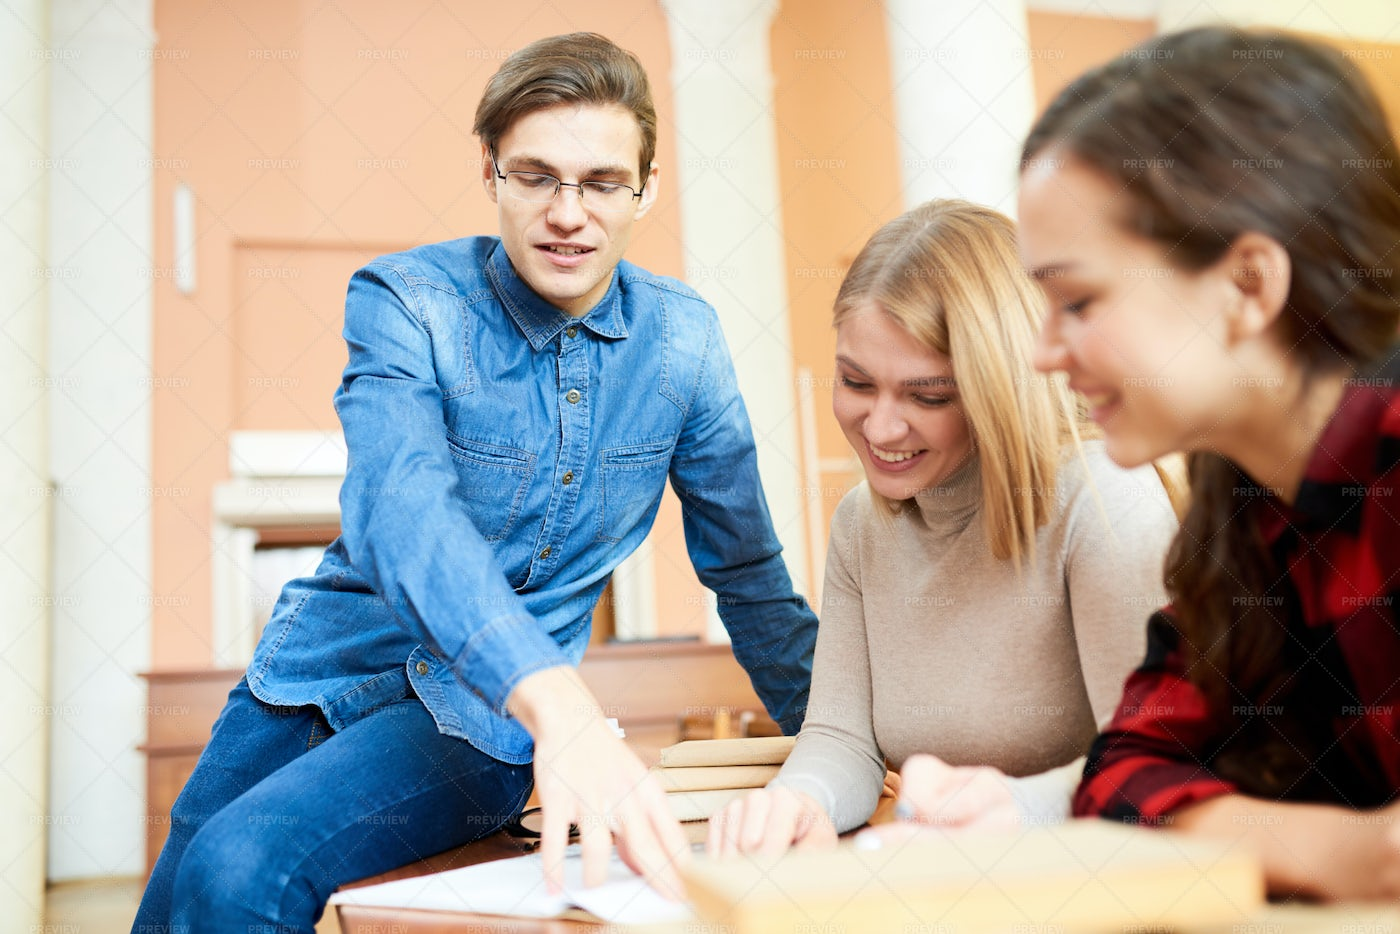 Ecstatic Students Discussing...: Stock Photos